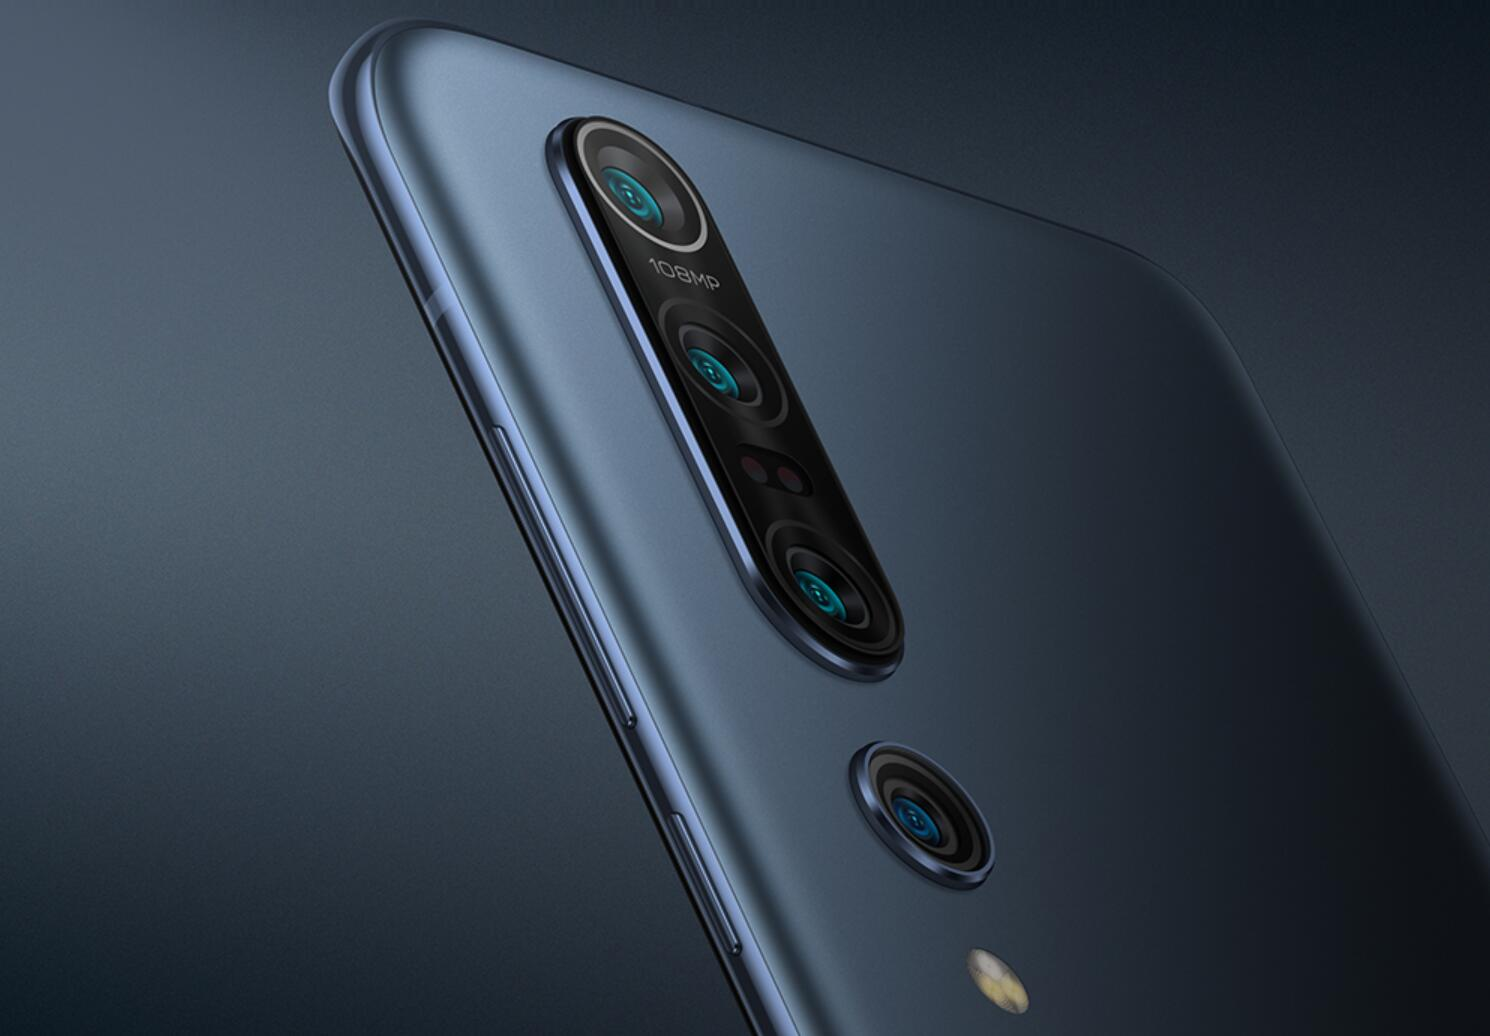 Xiaomi delays Mi 10 global launch due to MWC cancellation-cnTechPost